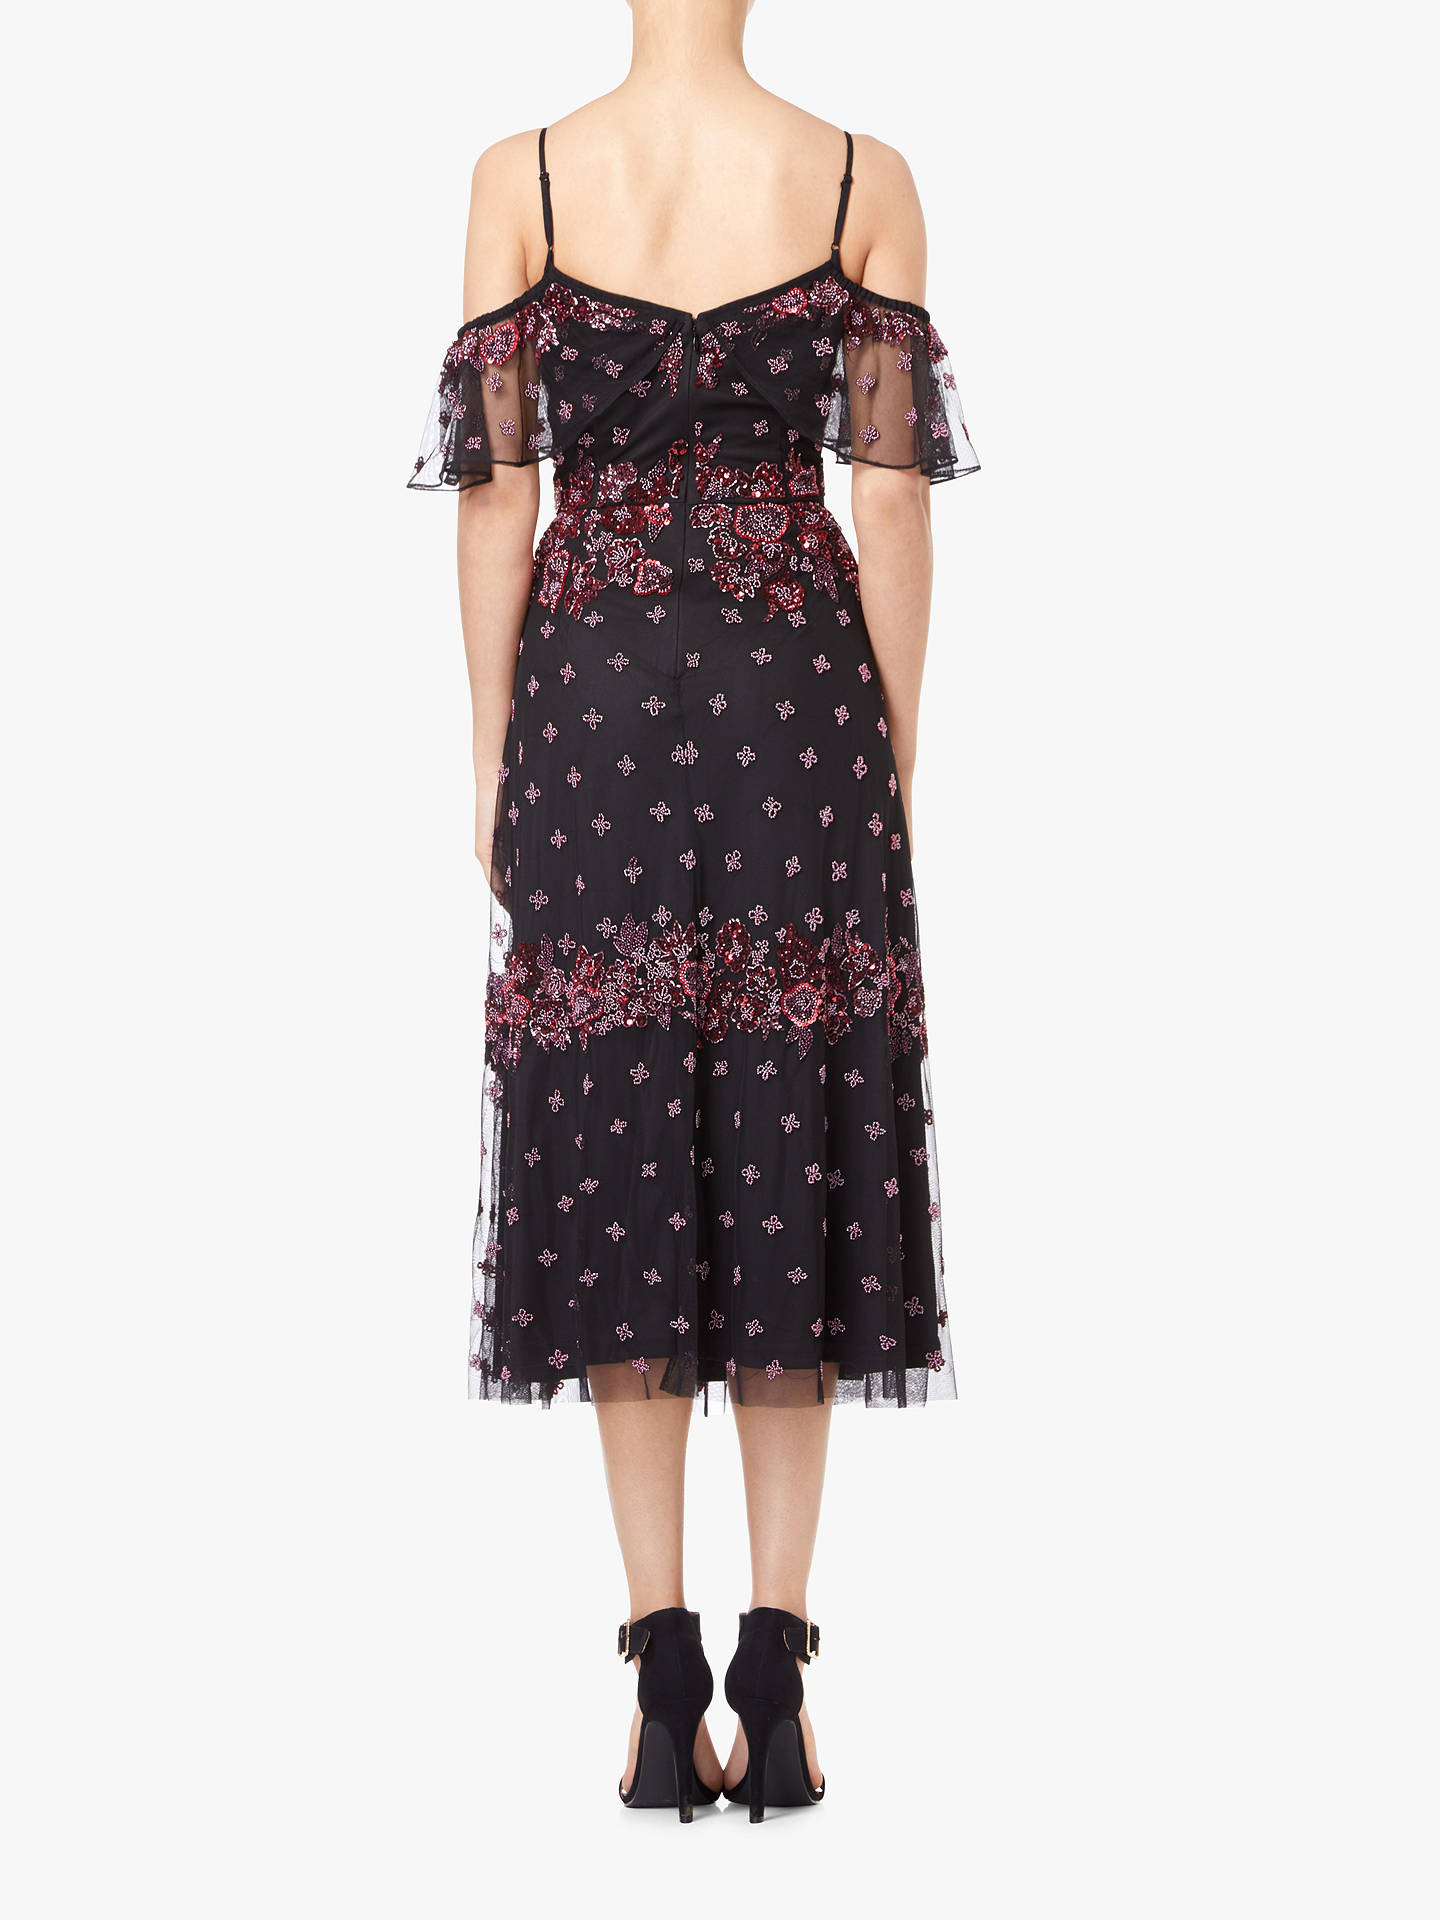 BuyAdrianna Papell Drop Shoulder Beaded Midi Dress, Black/Multi, 8 Online at johnlewis.com